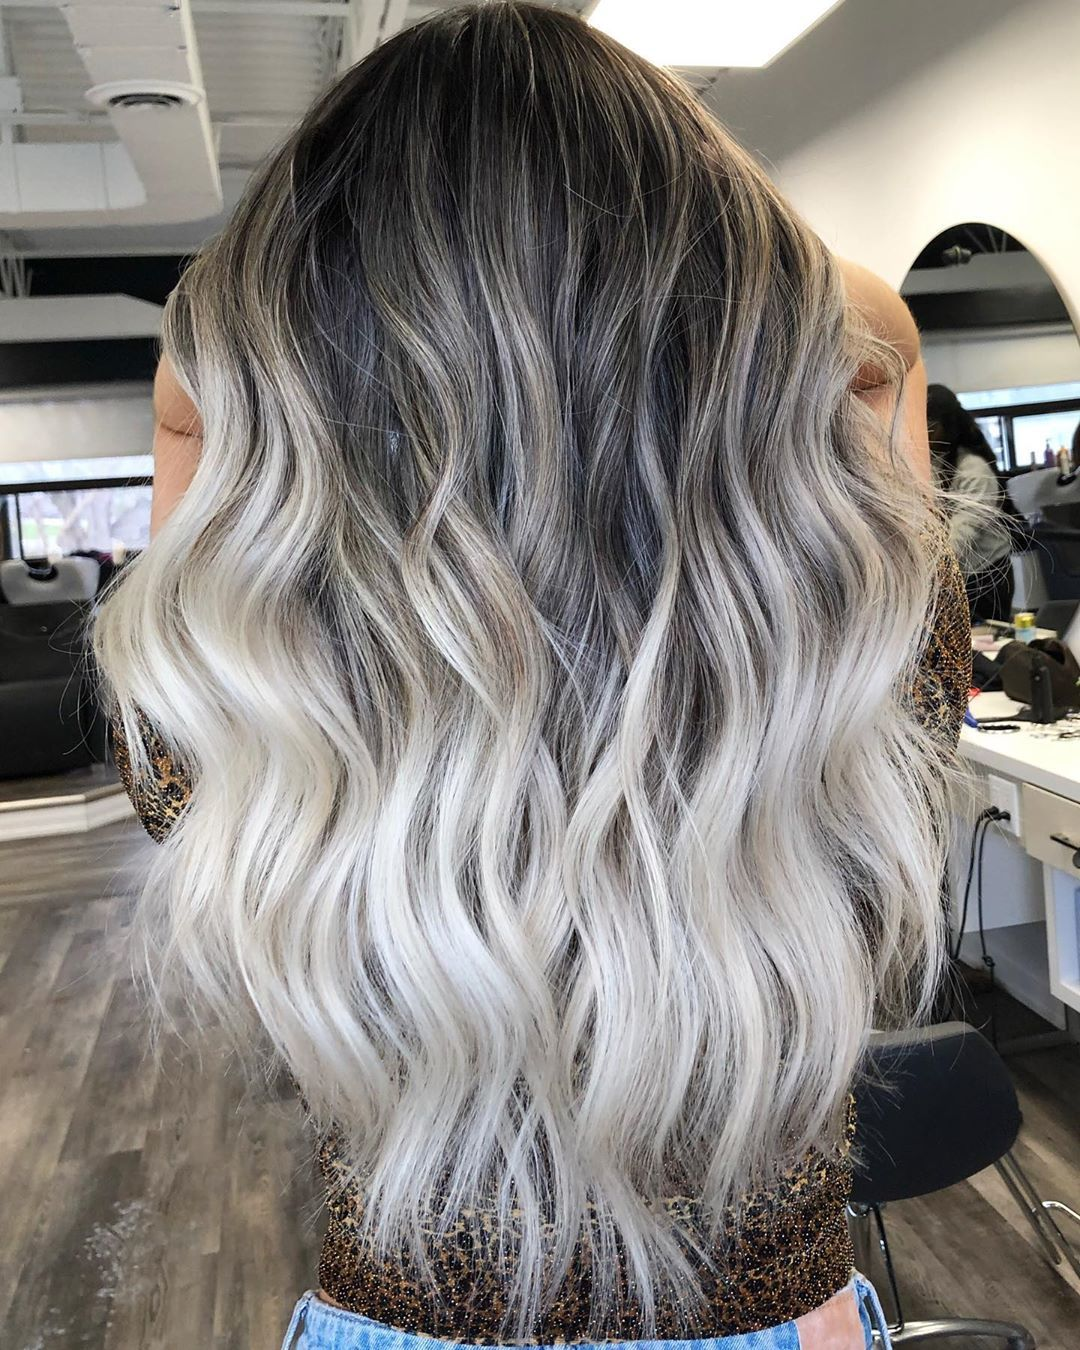 20+ Wavy hair with instyler ideas